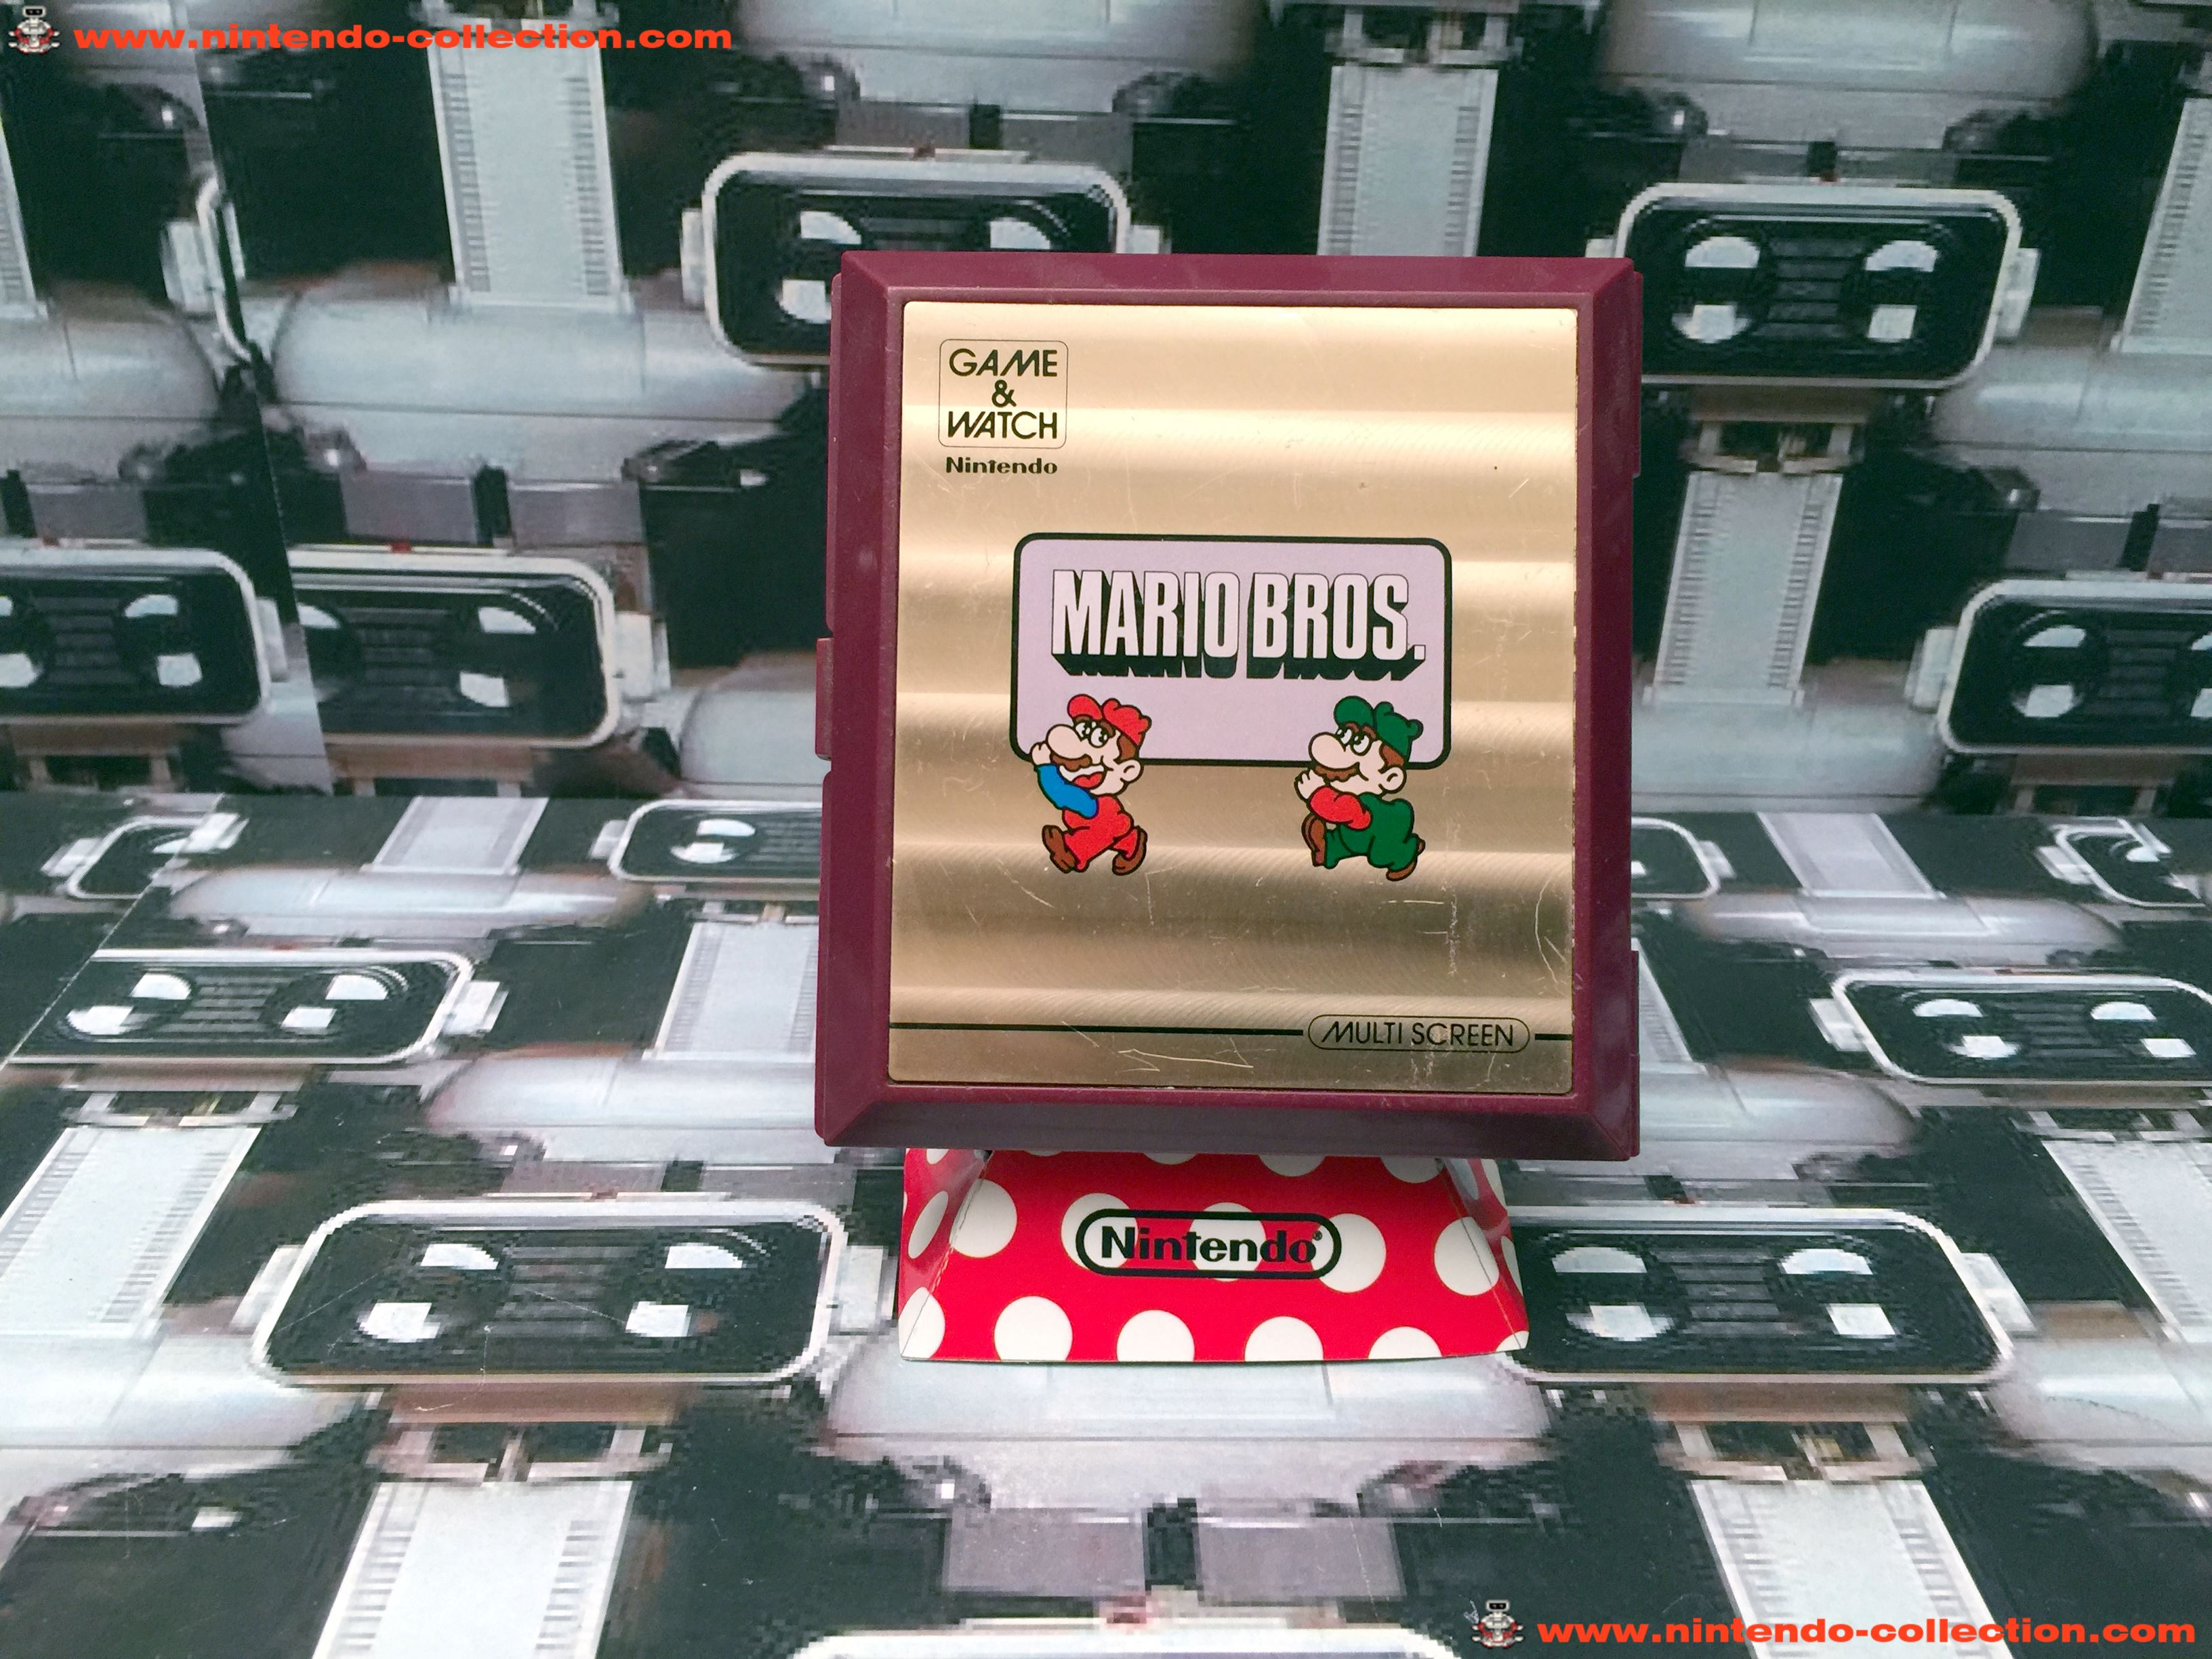 www.nintendo-collection.com - Game & Watch Multi Screen Mario Bros. - 01